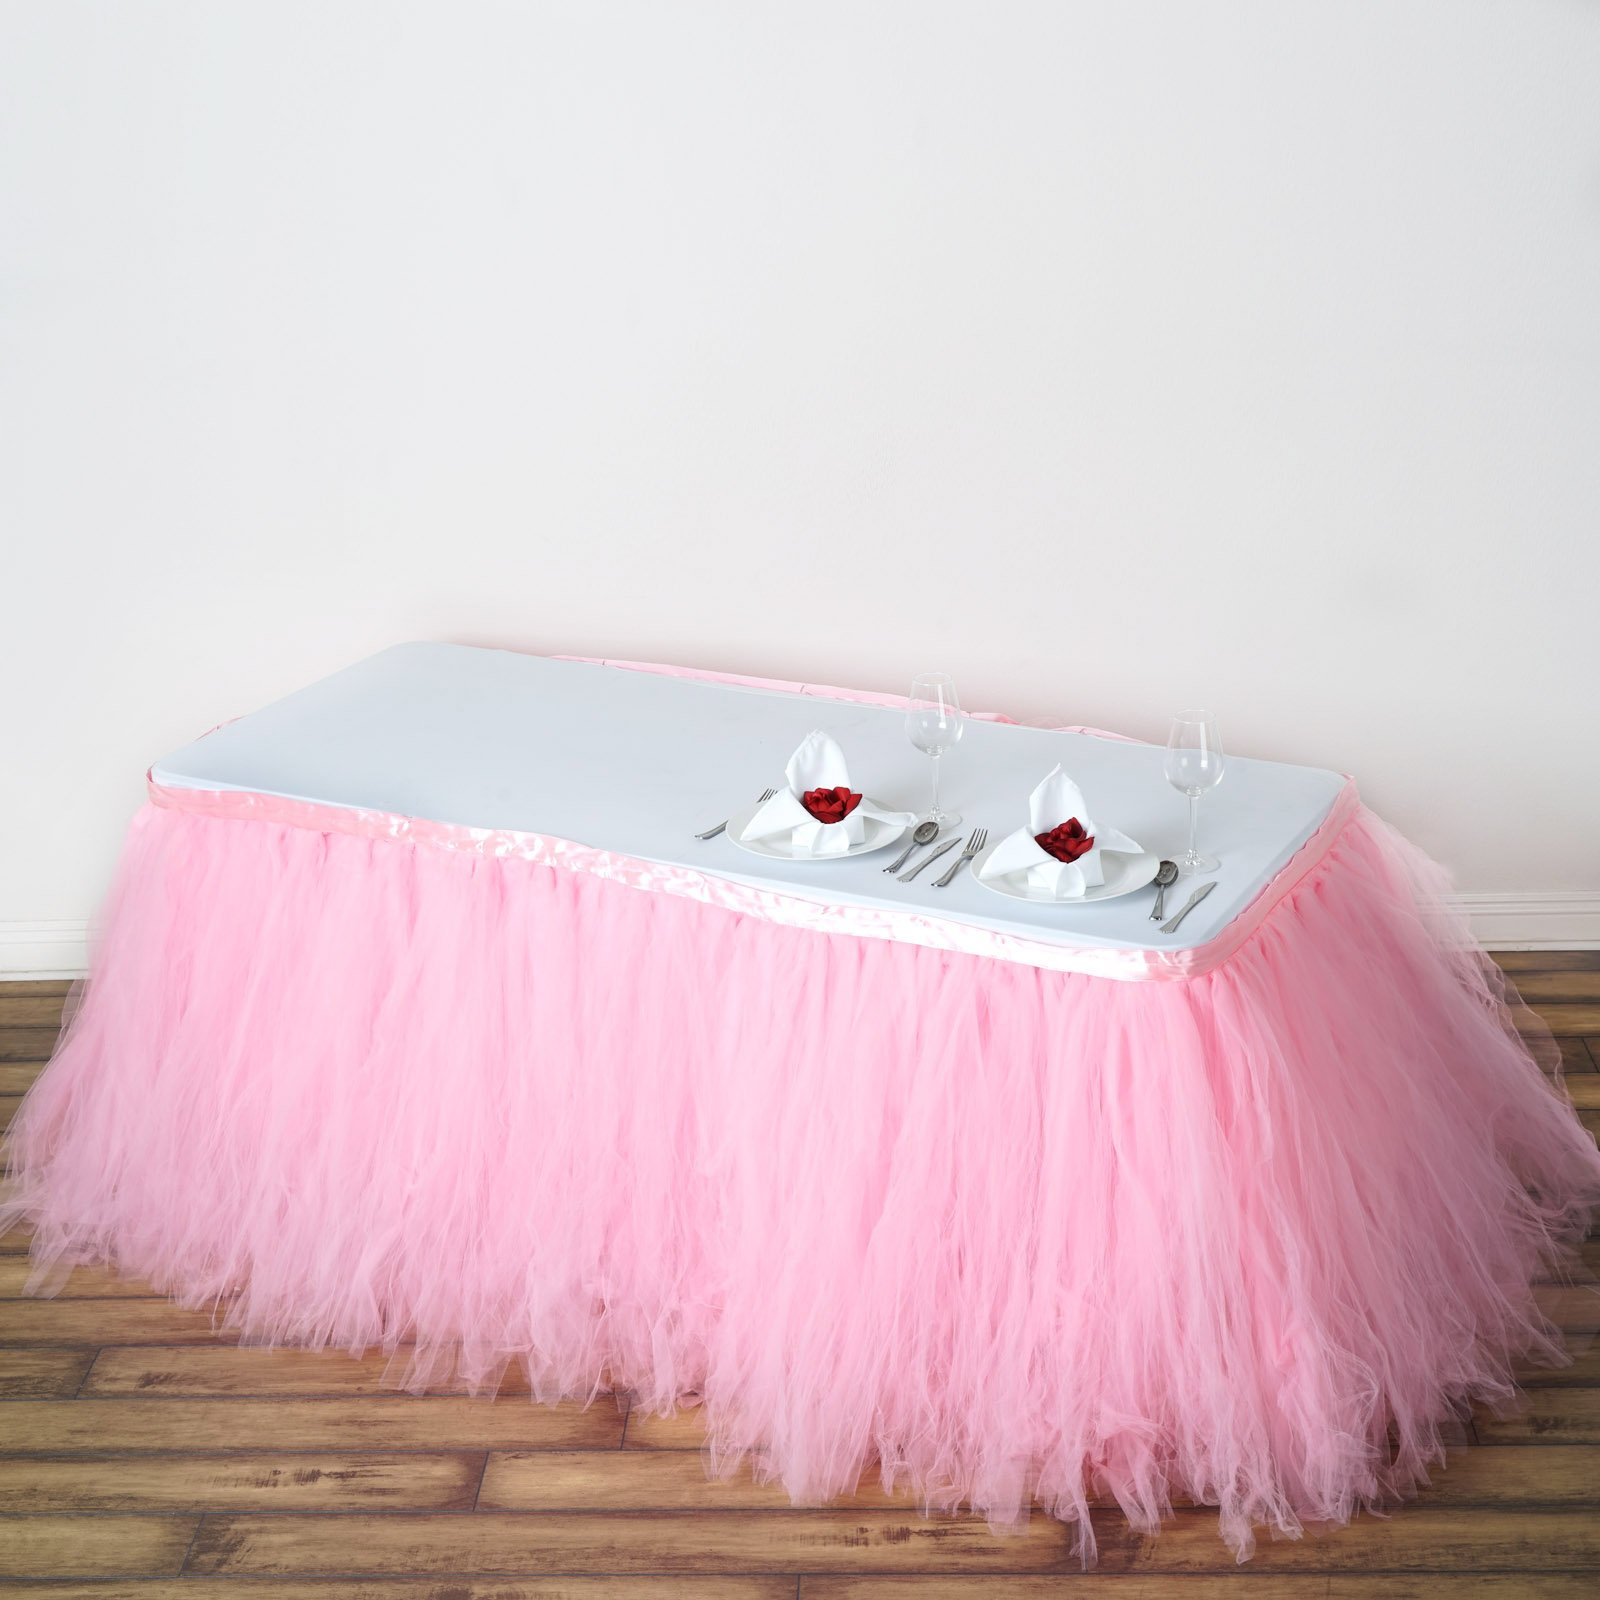 Tableclothsfactory 21ft FULL SIZE 8 Layer Fluffy Tulle - Tutu Table Skirt - Rose Quartz Pink by Tableclothsfactory (Image #2)